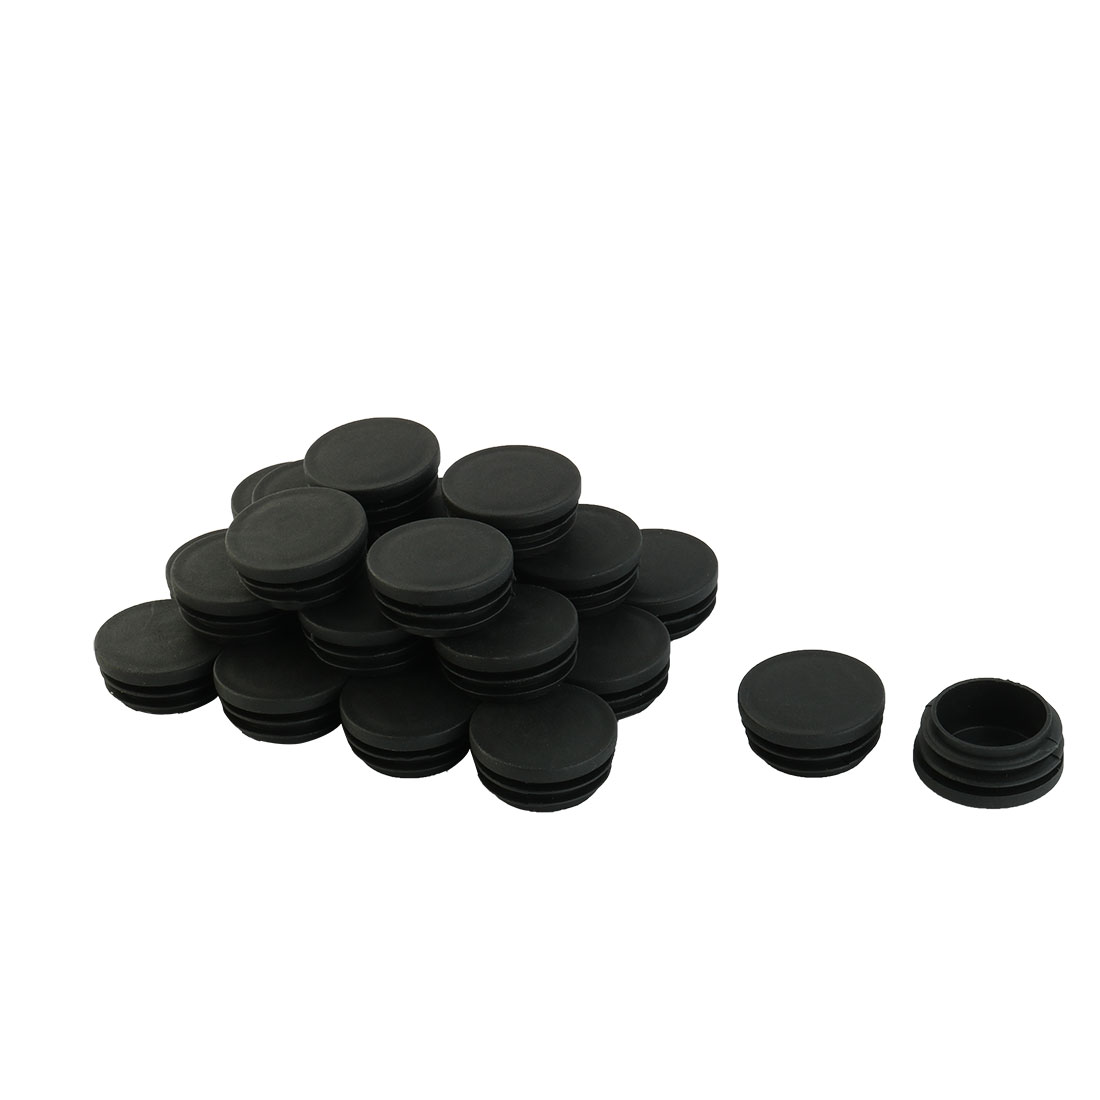 "Black Plastic Blanking End Caps 1 1/2"" Round Tube Insert Bung 24 Pcs"